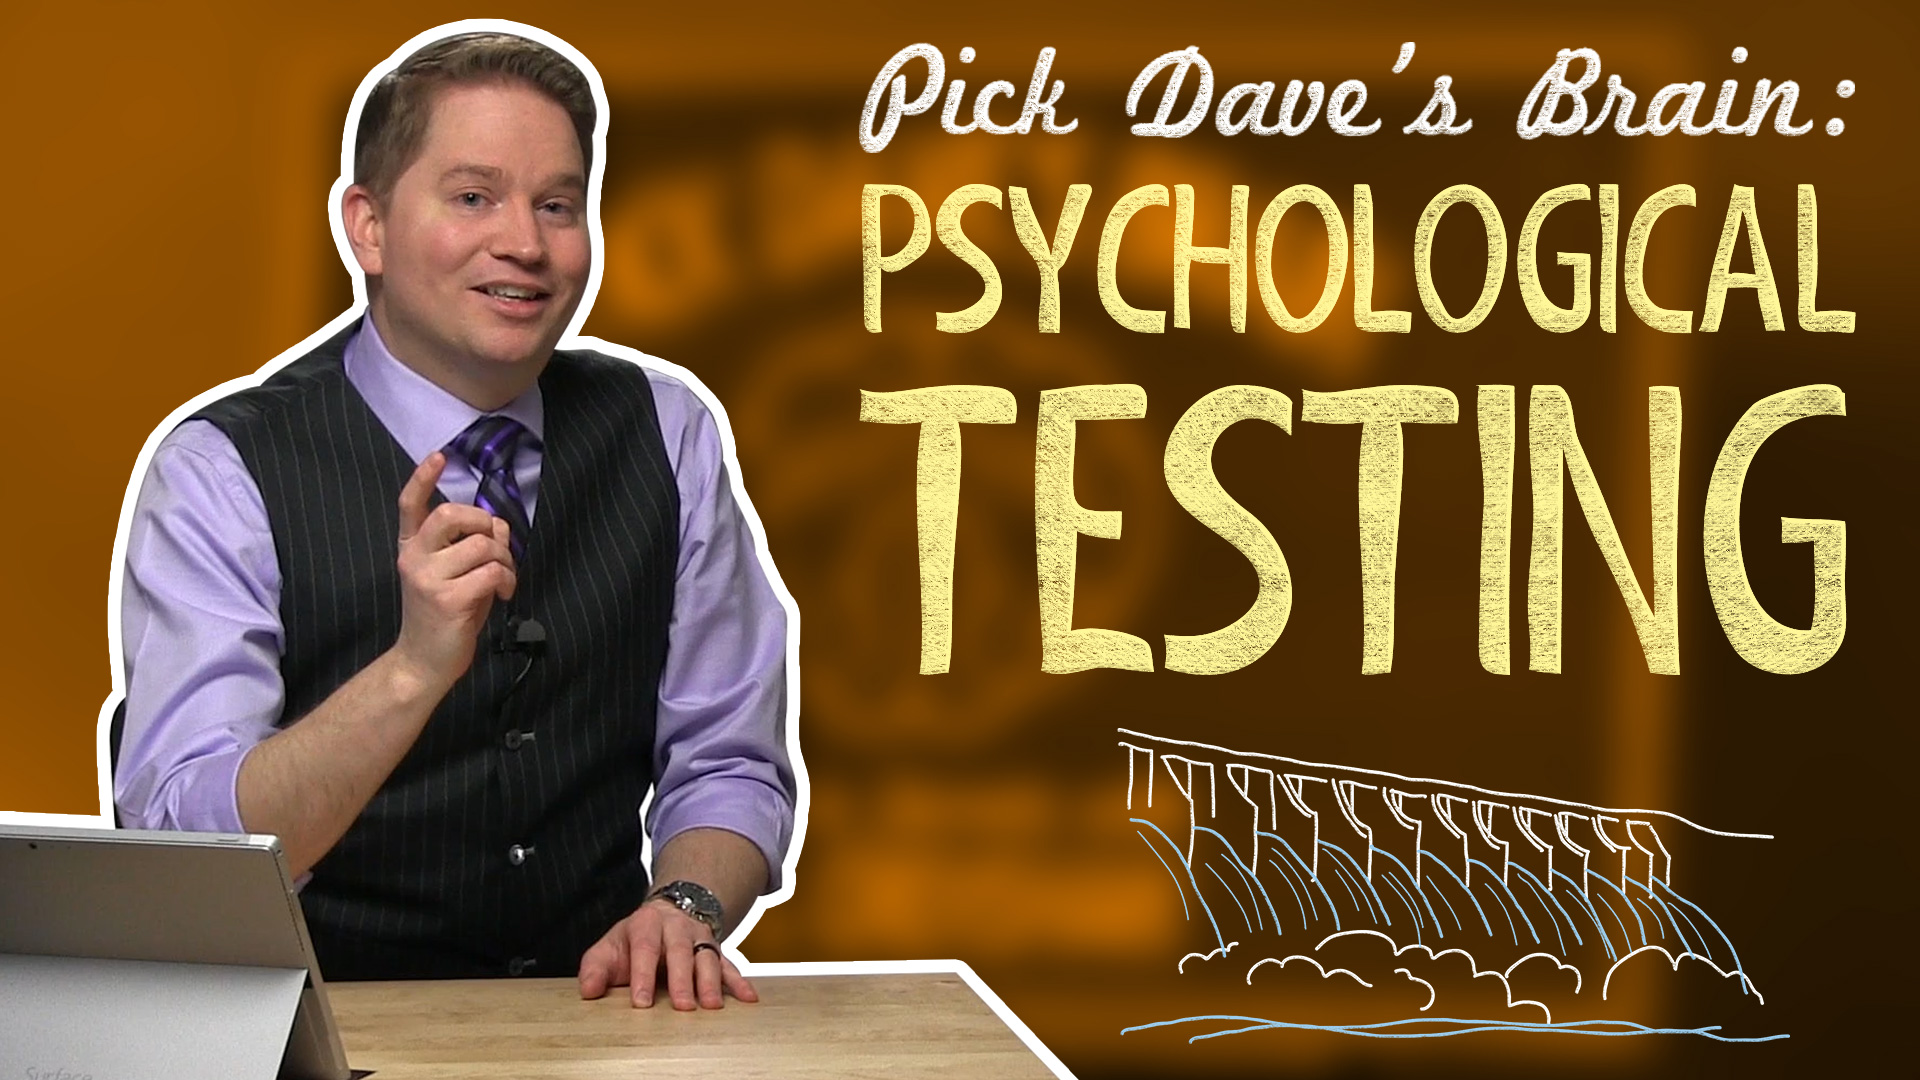 Do Execs Need Psychological Testing? – Pick Dave's Brain